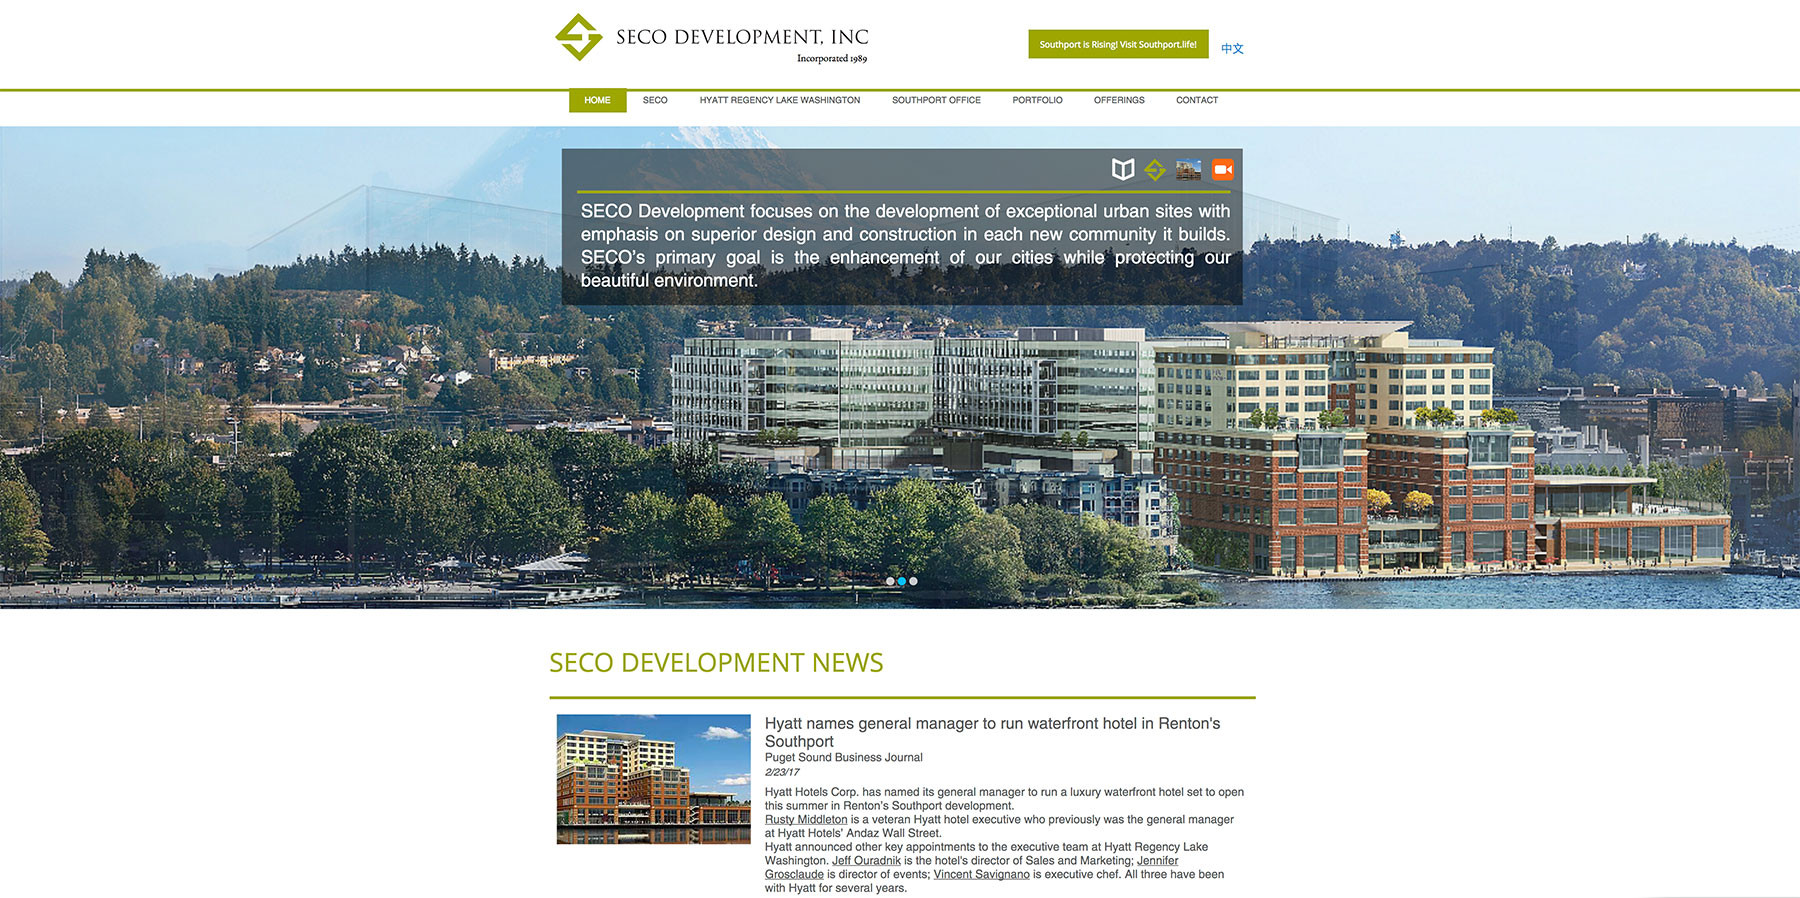 SECO Development